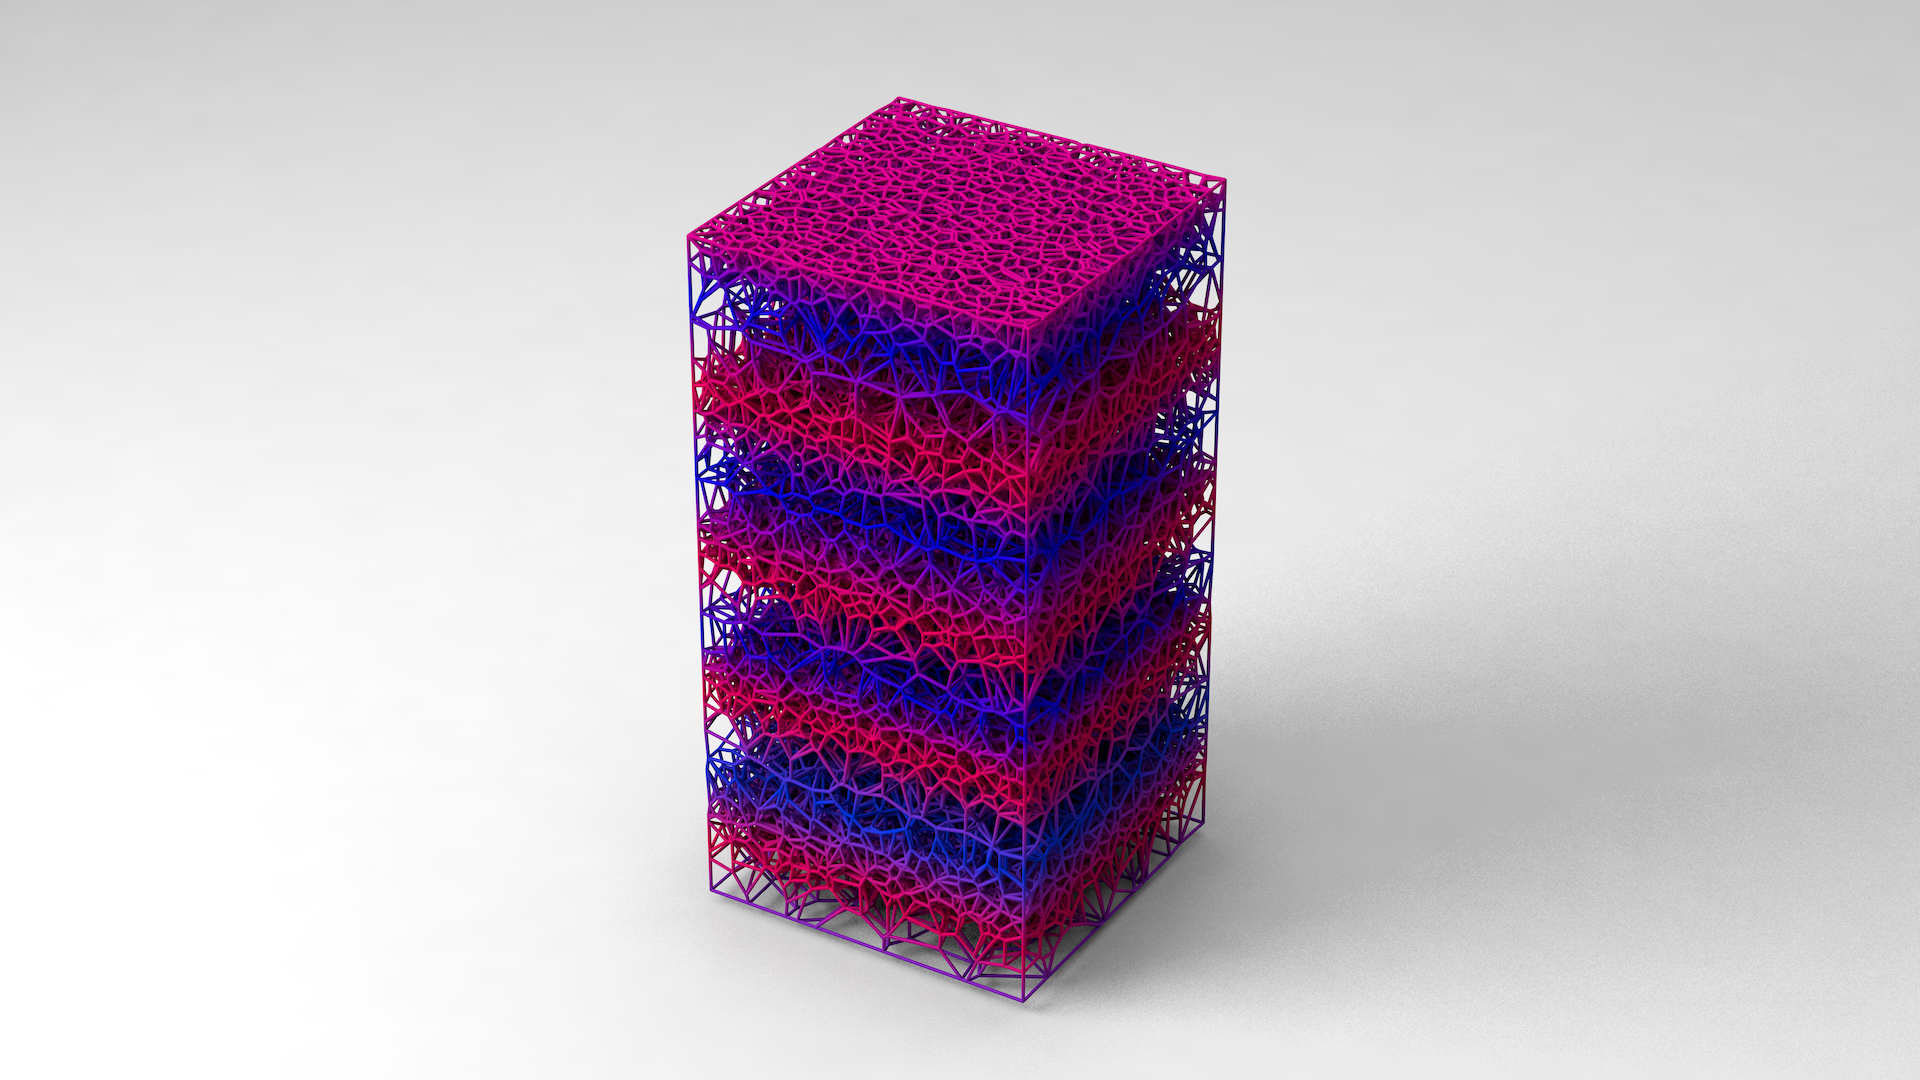 Origami_stent_CUBICmeseh7.png